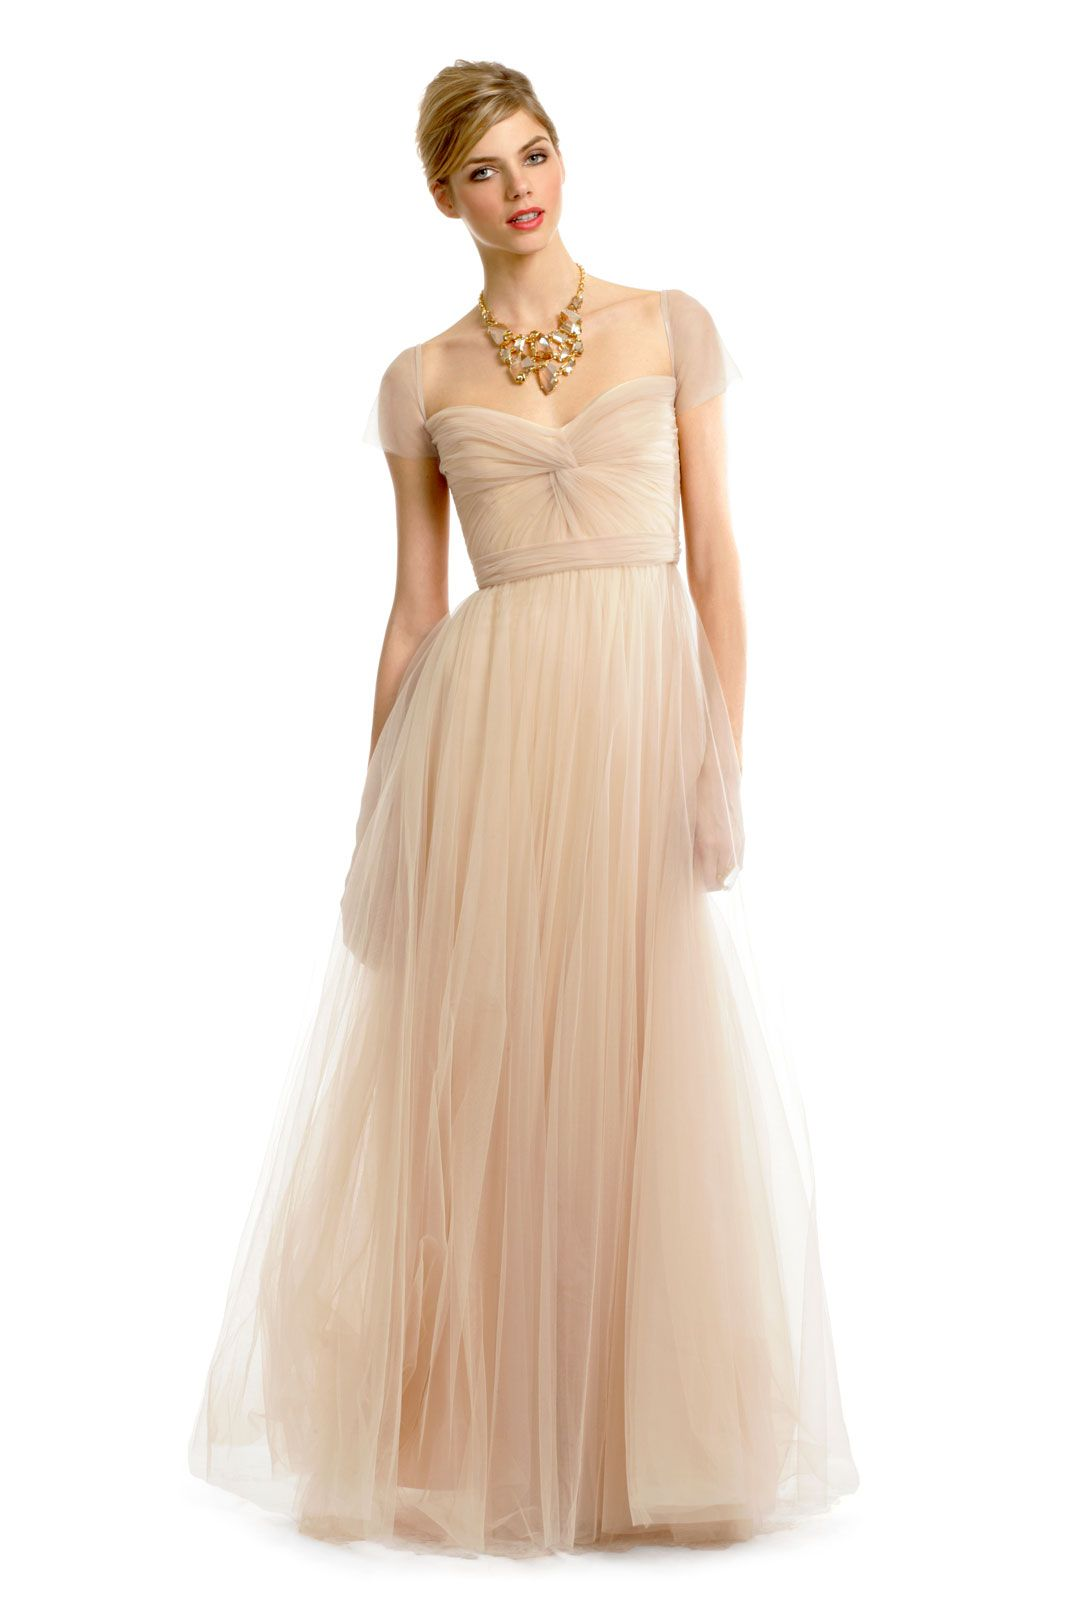 Florence gown my someday pinterest dresses gowns and wedding